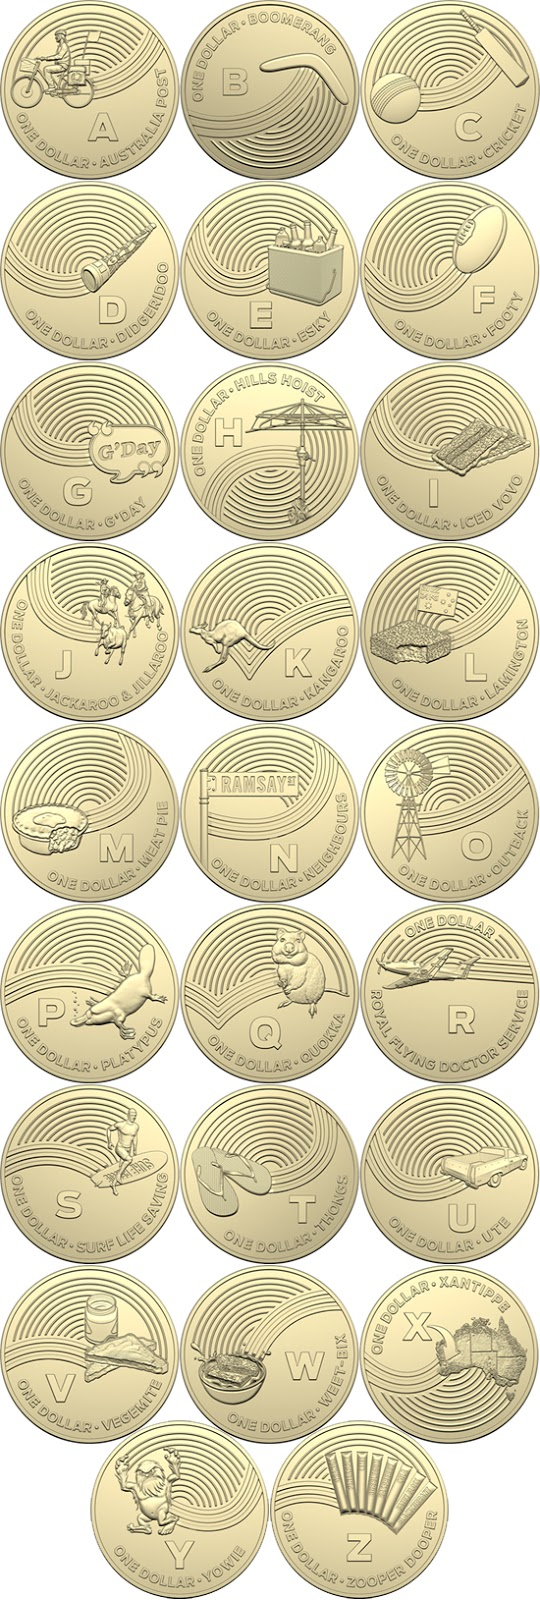 Australia 1 dollar 2019 - The Great Aussie Coin Hunt A-Z